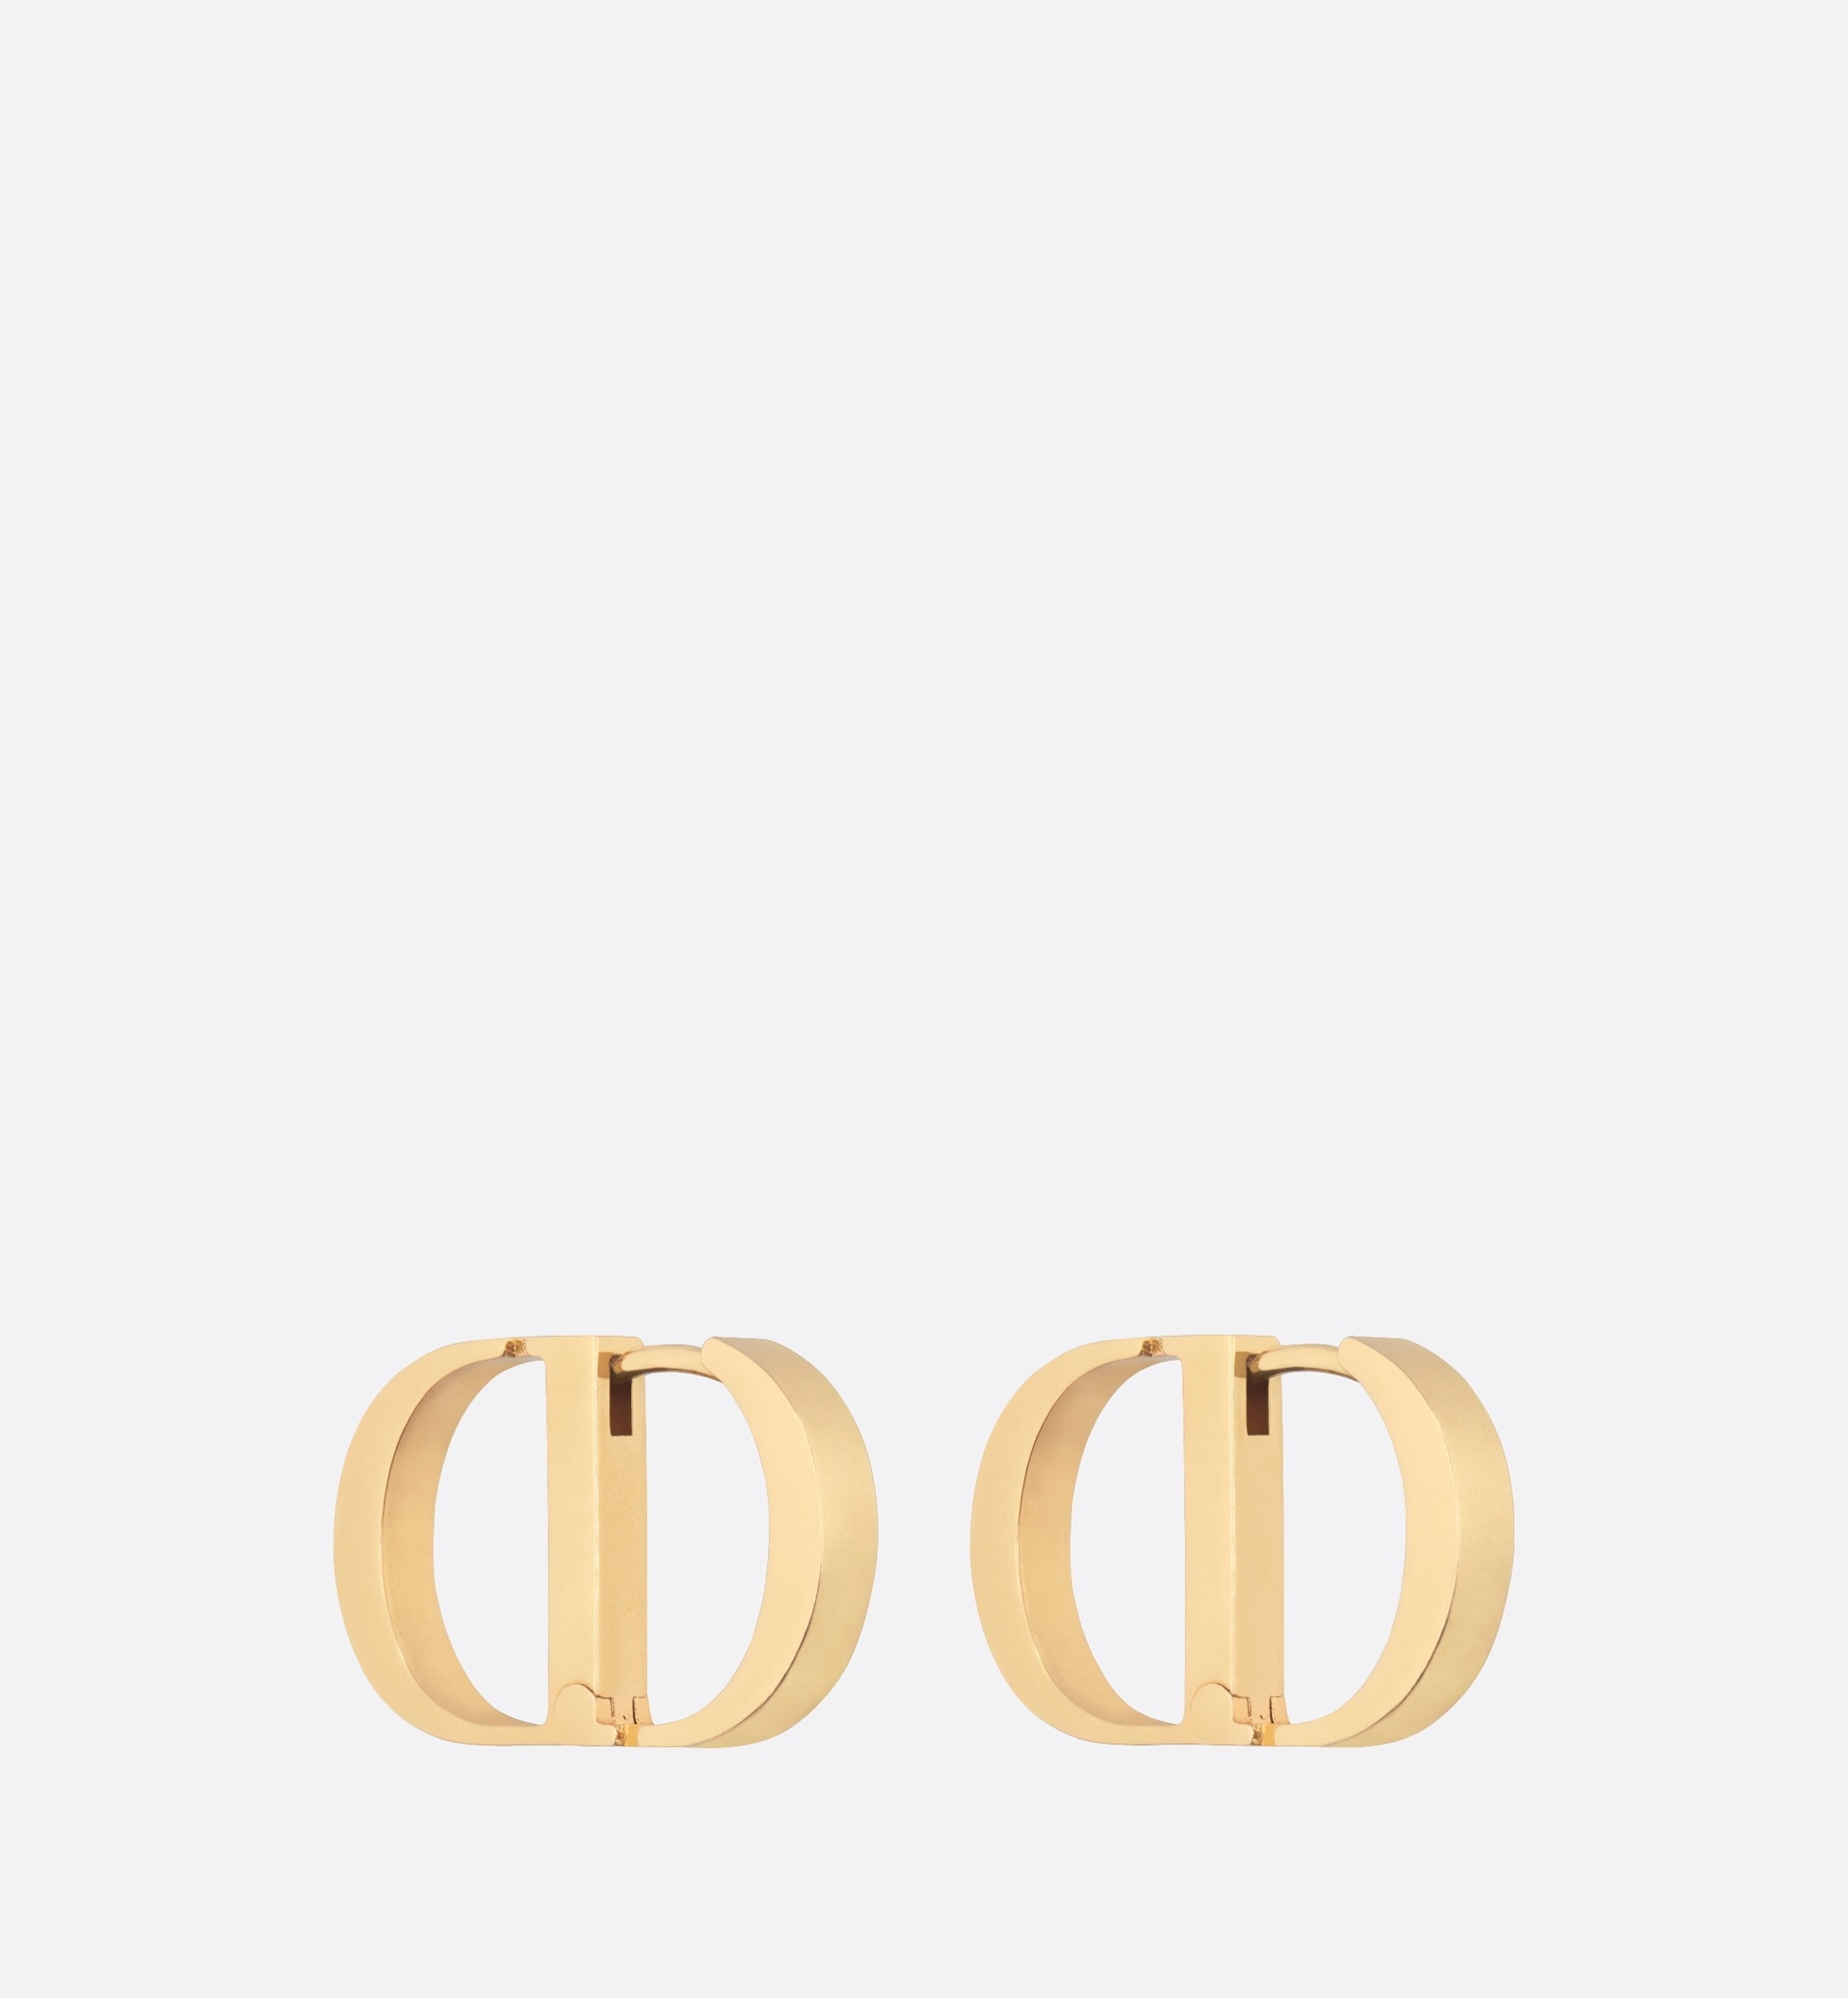 30 montaigne earrings | Dior Three quarter closed view